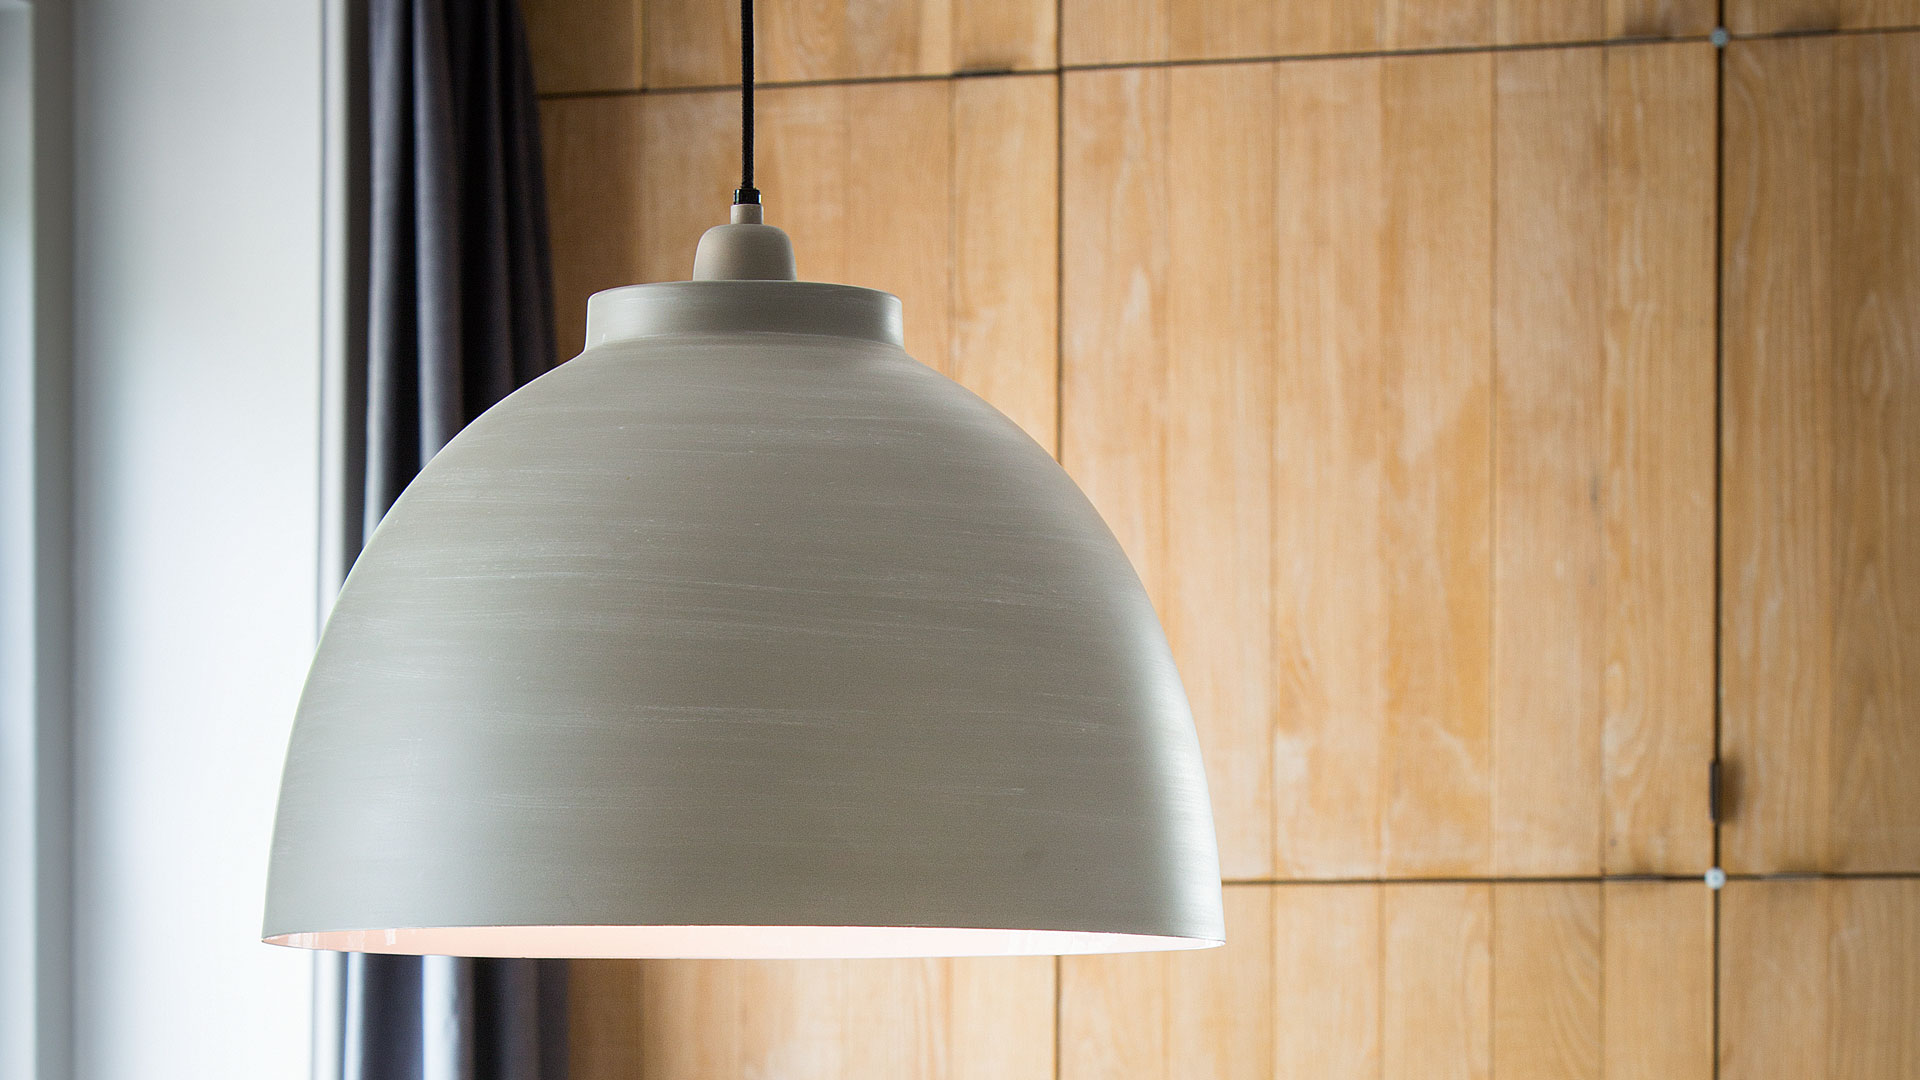 Ceiling lamps, wall lights and table lamps